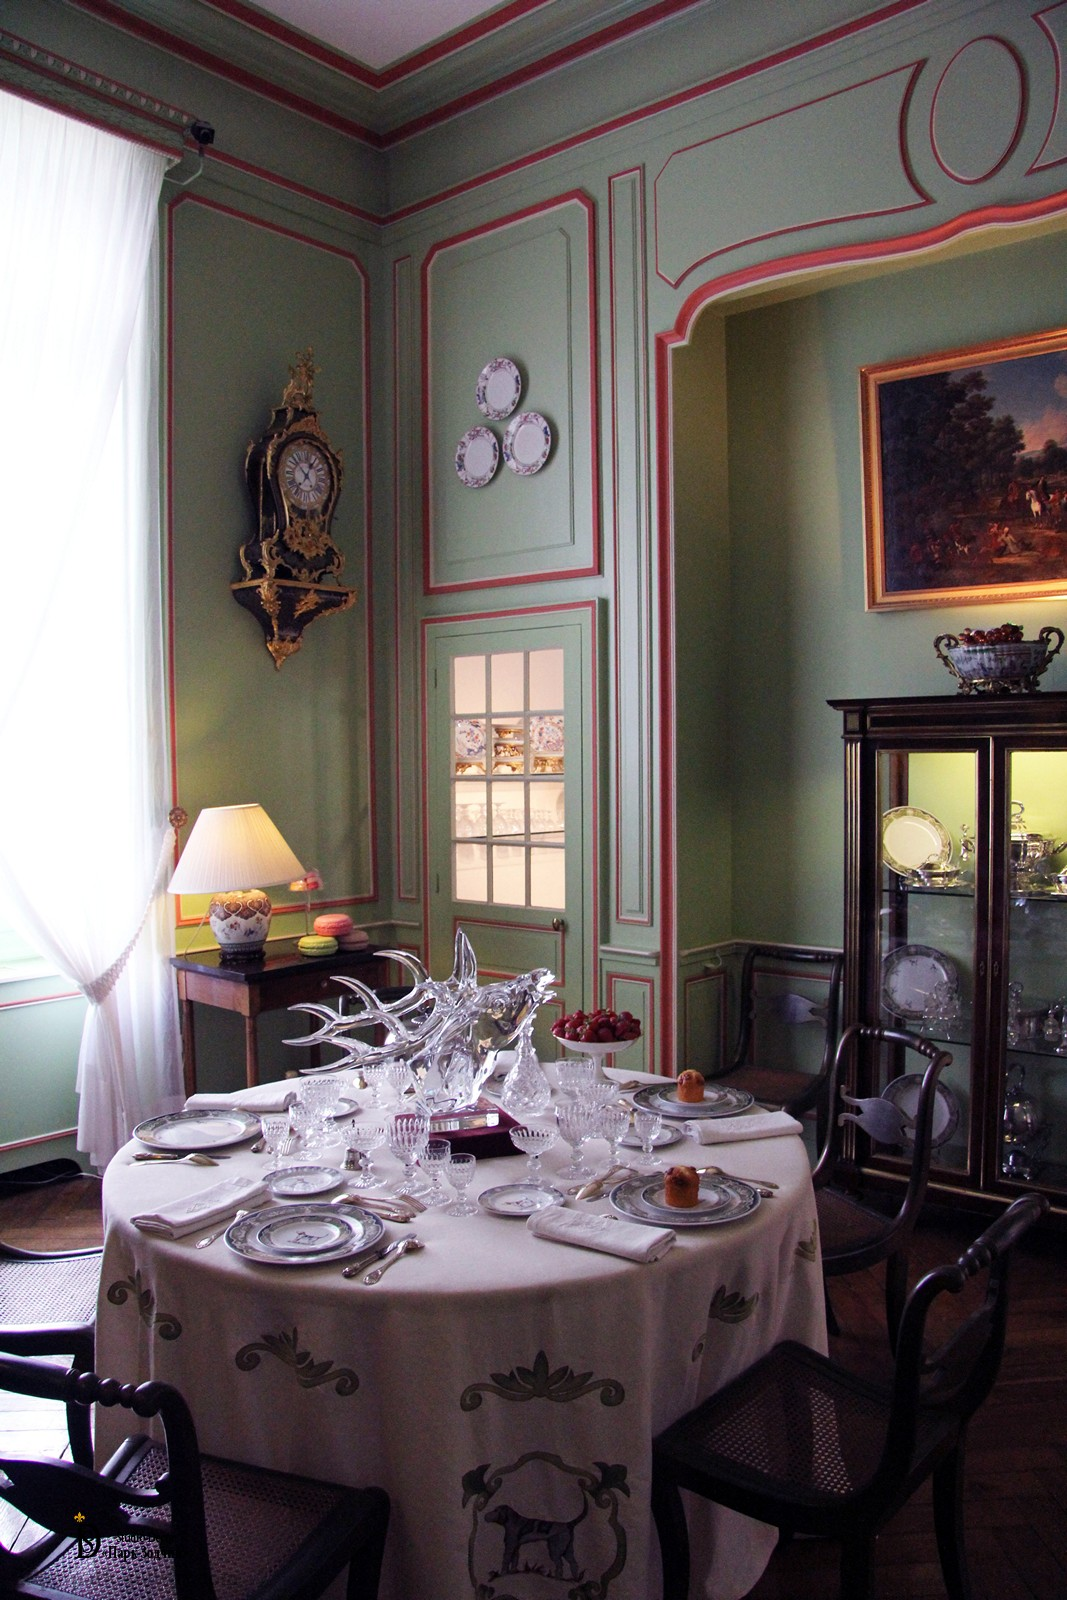 The dining room in the Provence style, unusual decorating